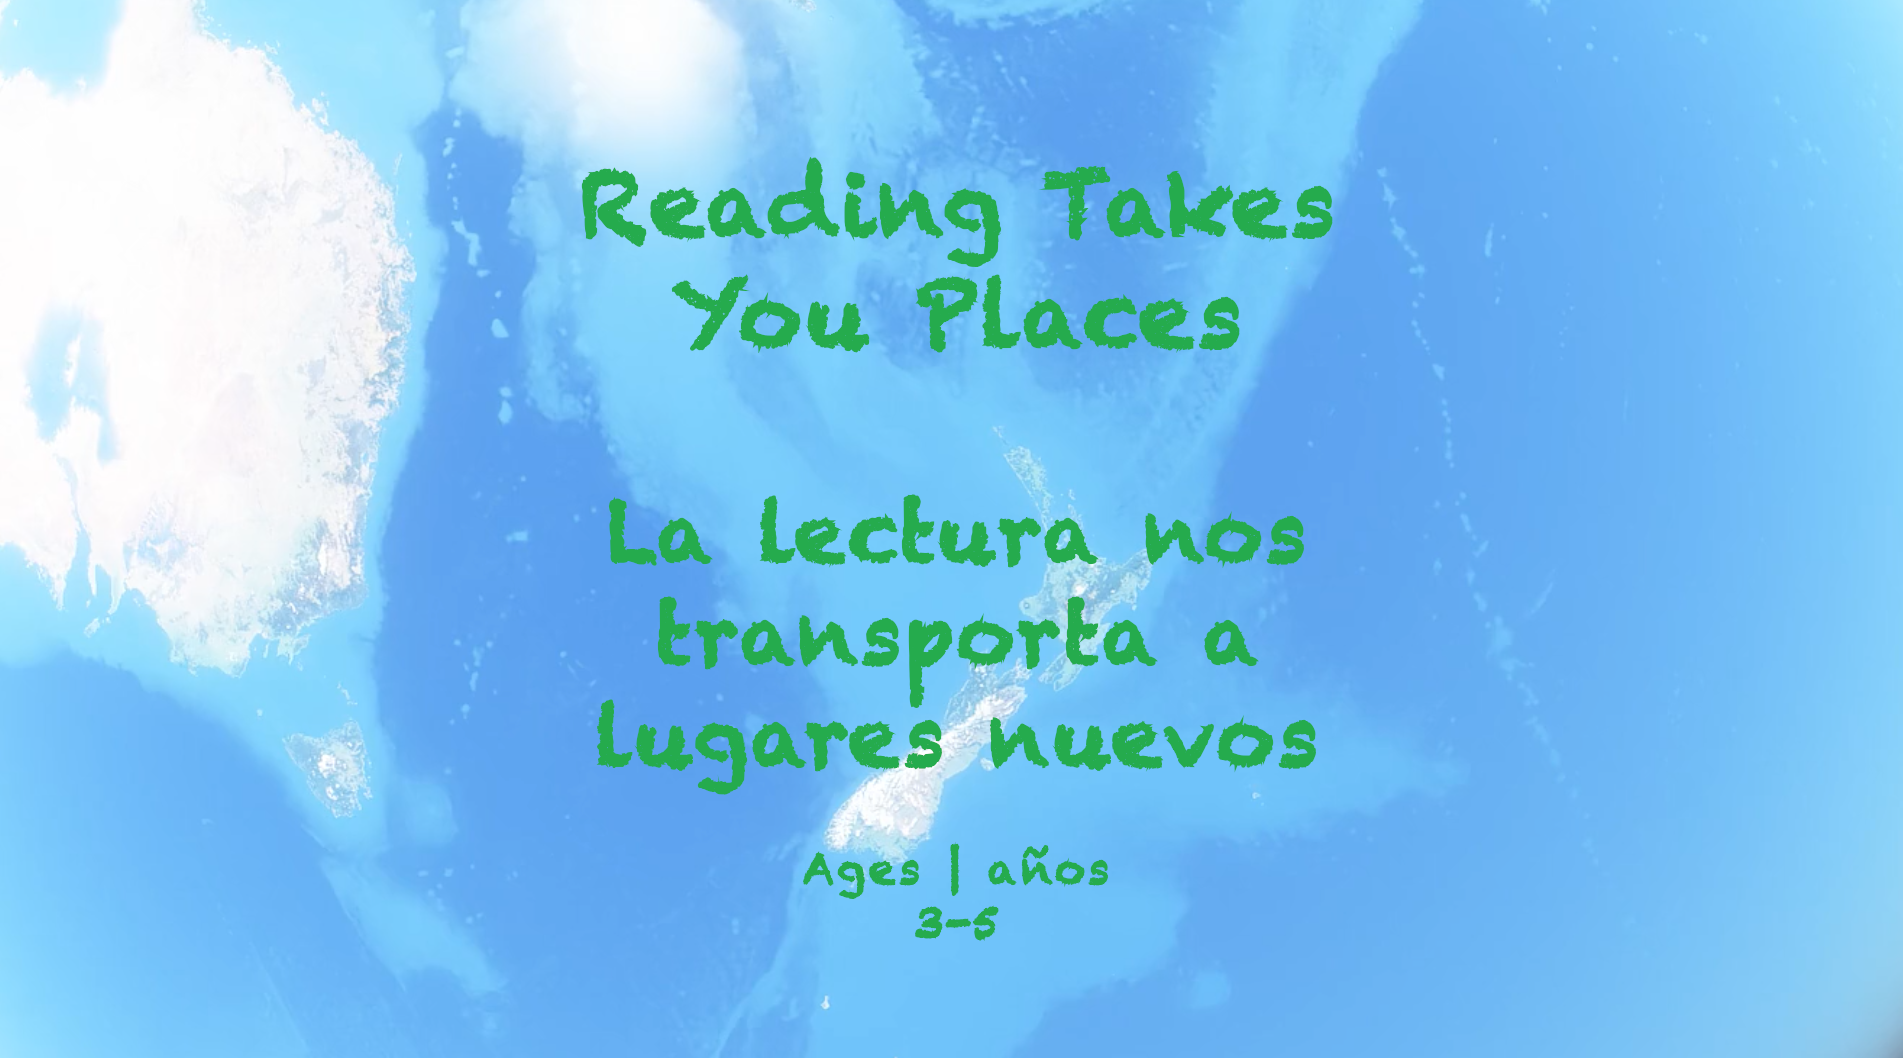 Week 22 Reading Takes You Places Card Ages 3-5